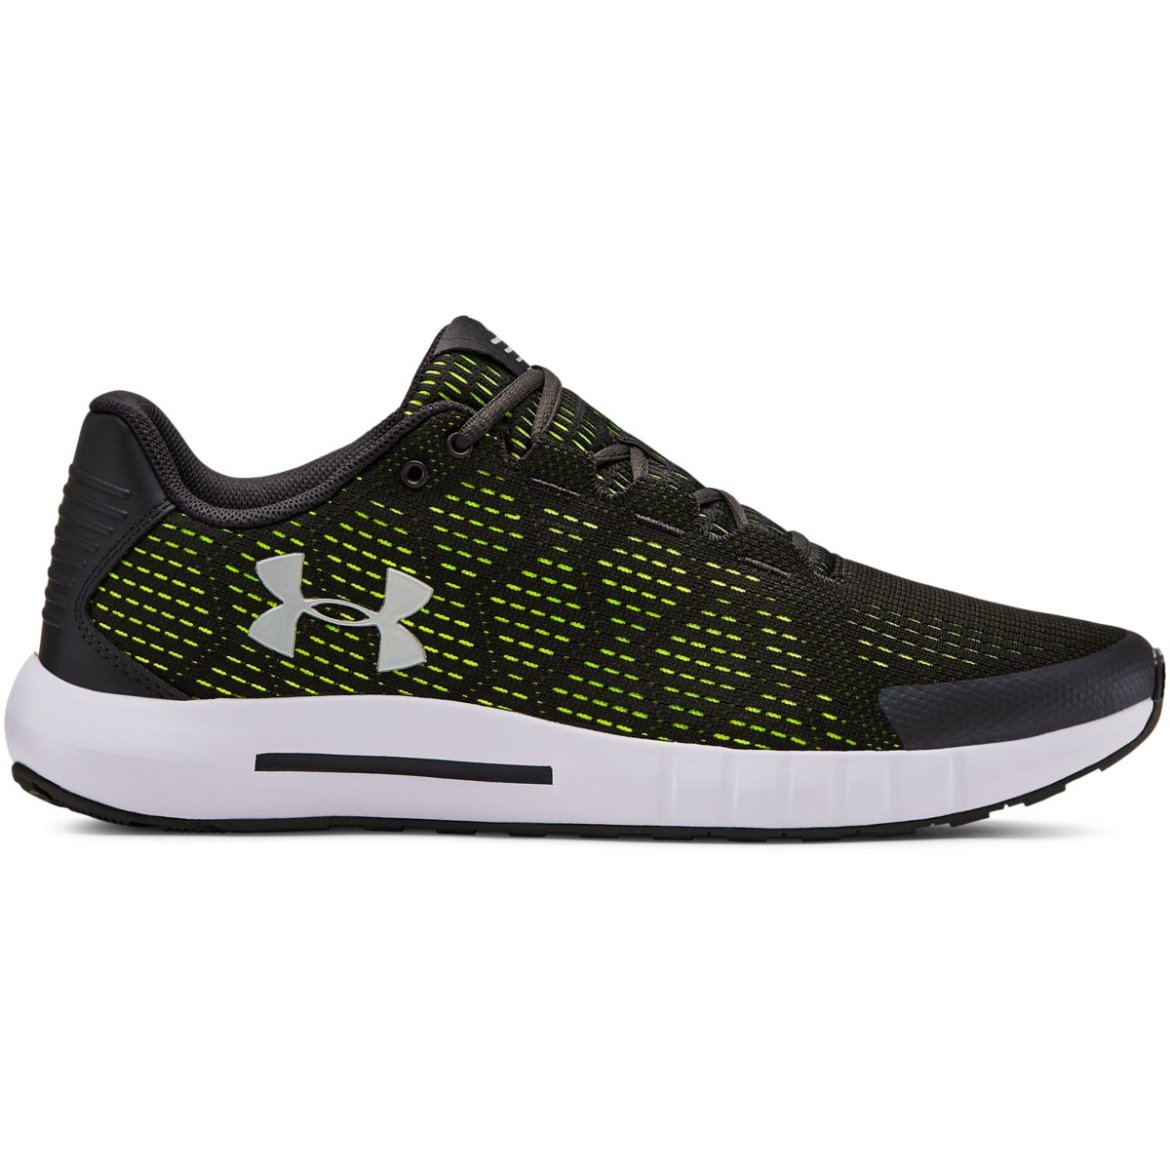 Under Armour Black and Yellow Men's Pursuit Running Shoes